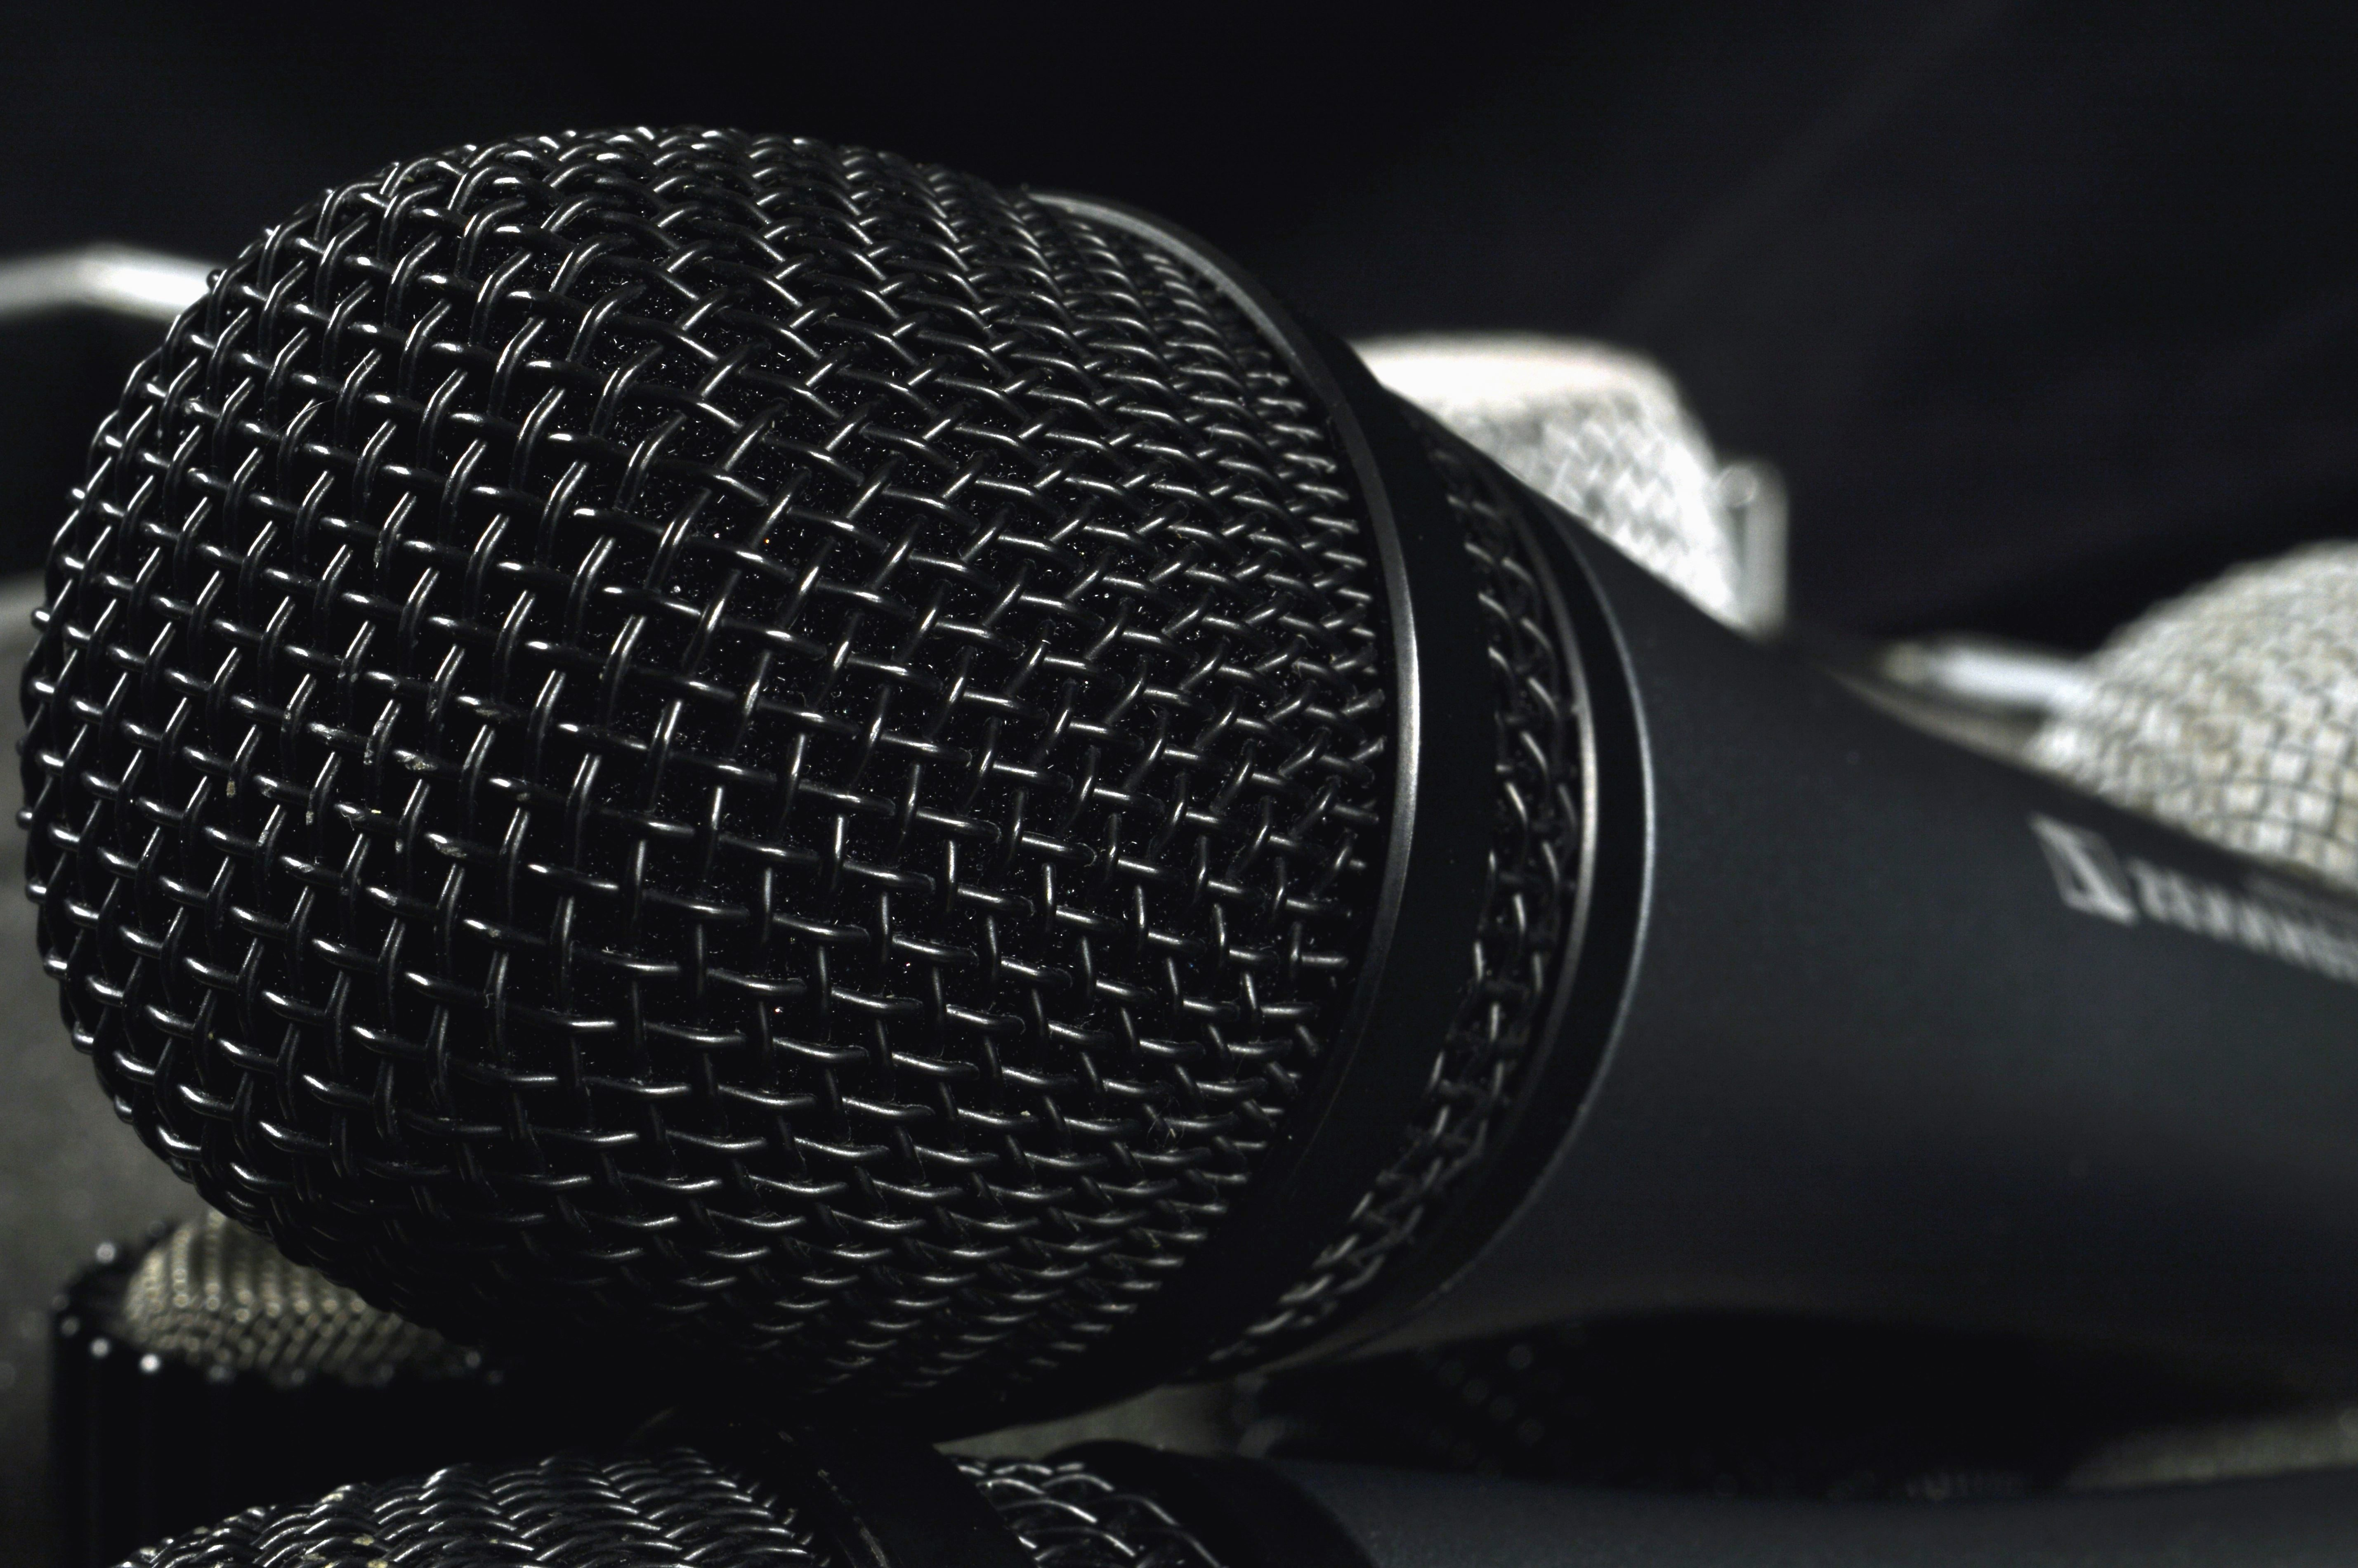 free picture  microphone  electronics  sound  voice